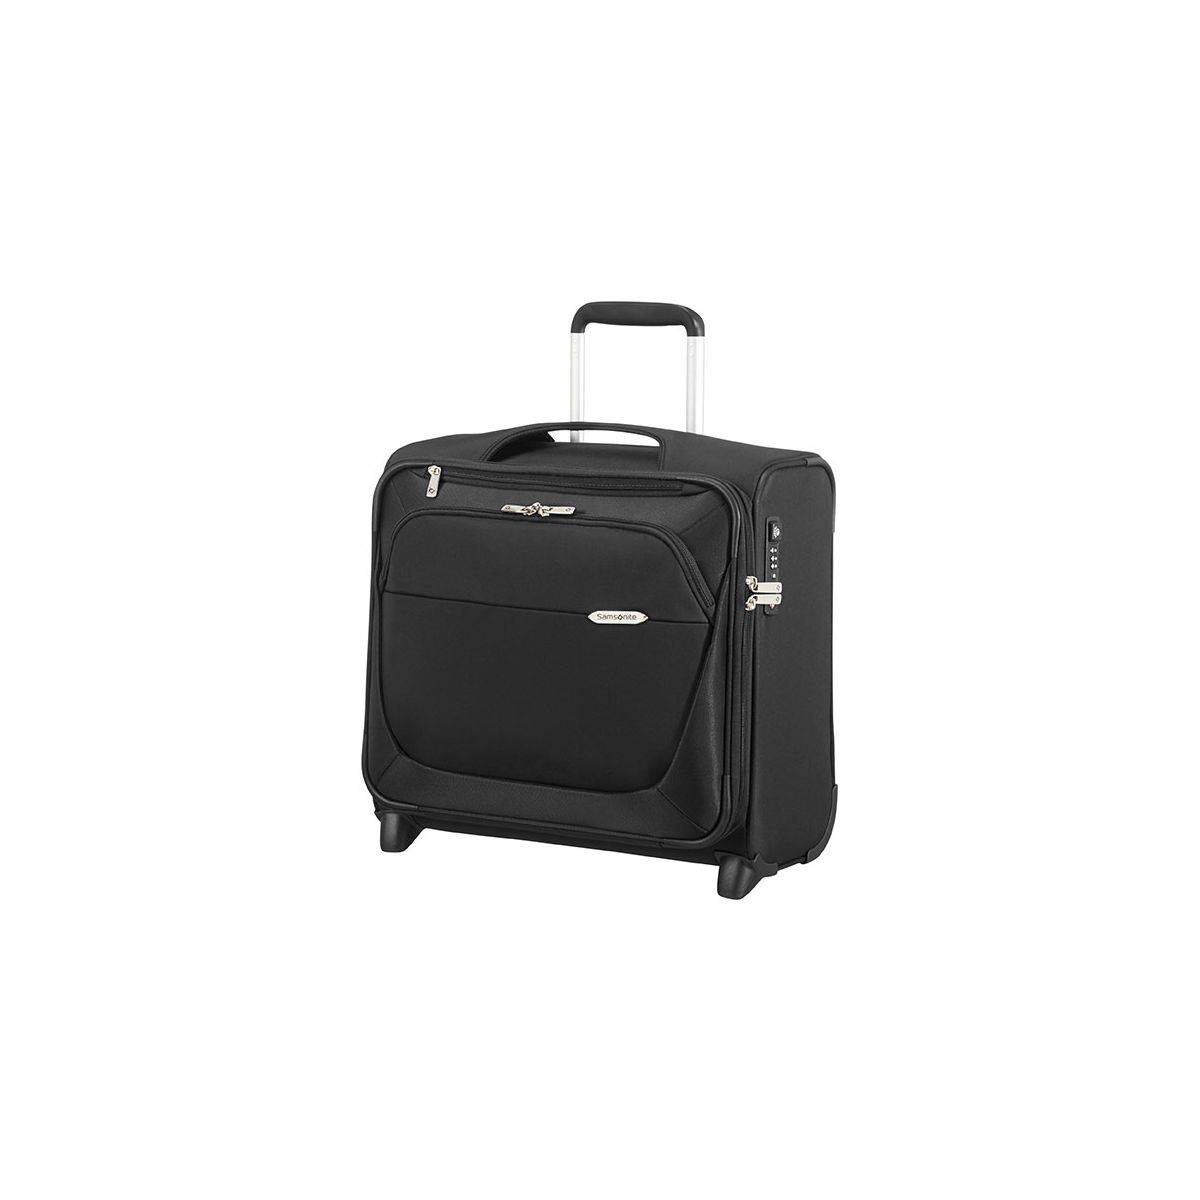 samsonite pilot case b lite rolling tote mixte fermeture zipp e 64955. Black Bedroom Furniture Sets. Home Design Ideas